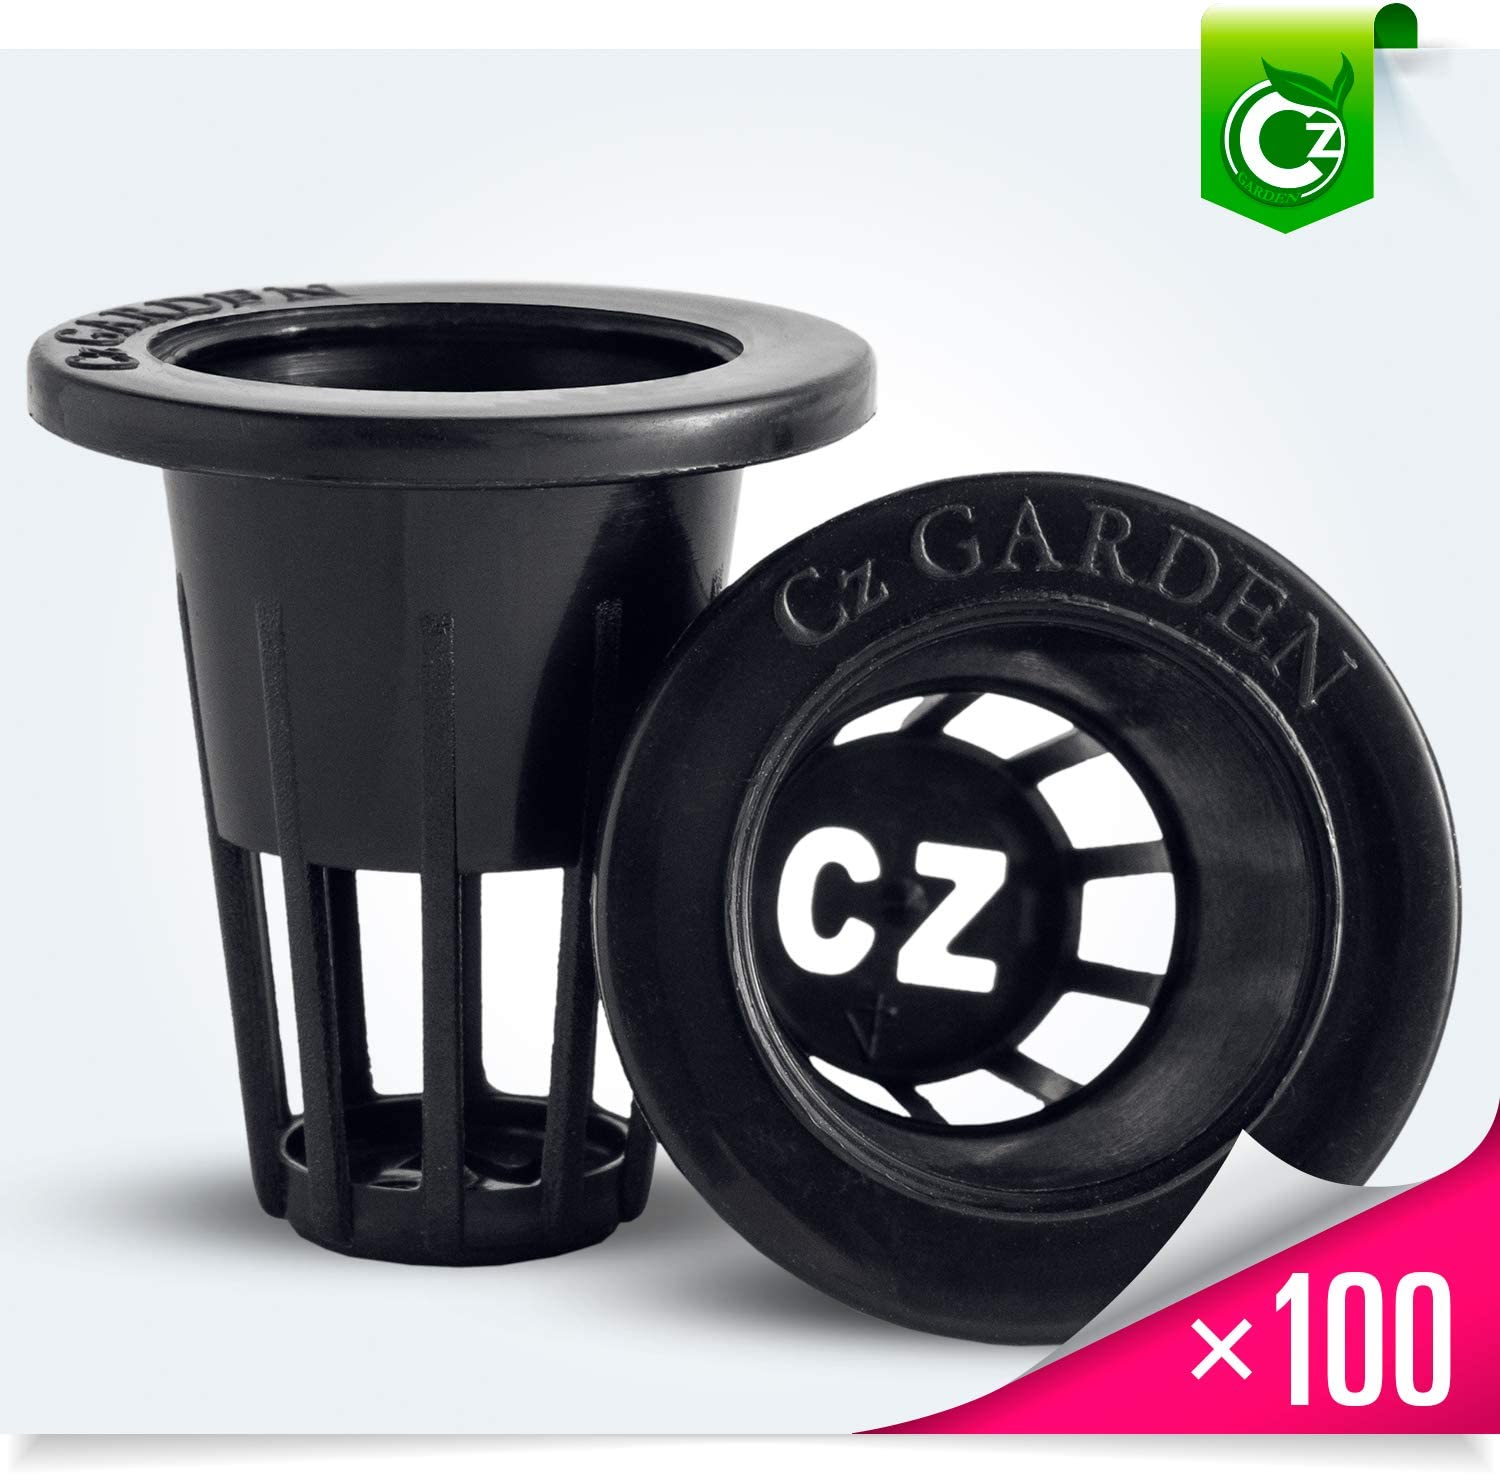 1 inch Net Pots Cz All Star Round HEAVY DUTY Net Cups WIDE LIP Design Orchids /• Aquaponics /• Aquaculture /• Hydroponics Slotted Mesh by Cz Garden 100 pack